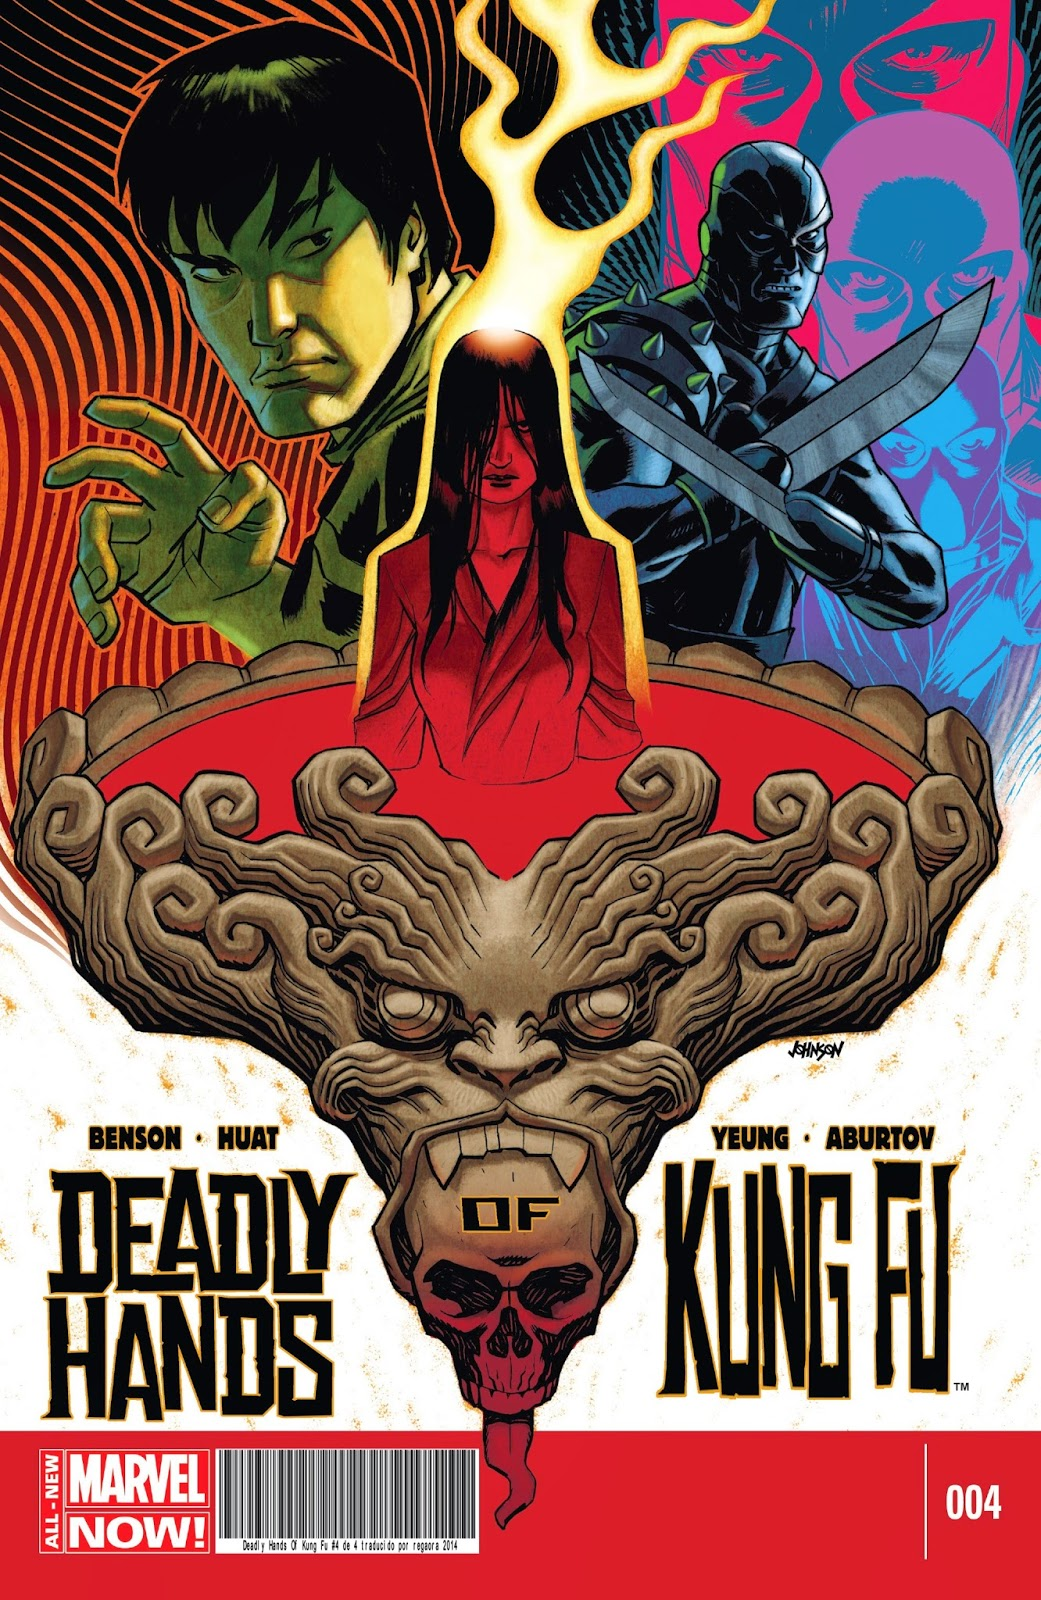 Portada de The Deadly Hands of Kung Fu 2014 miniserie 04